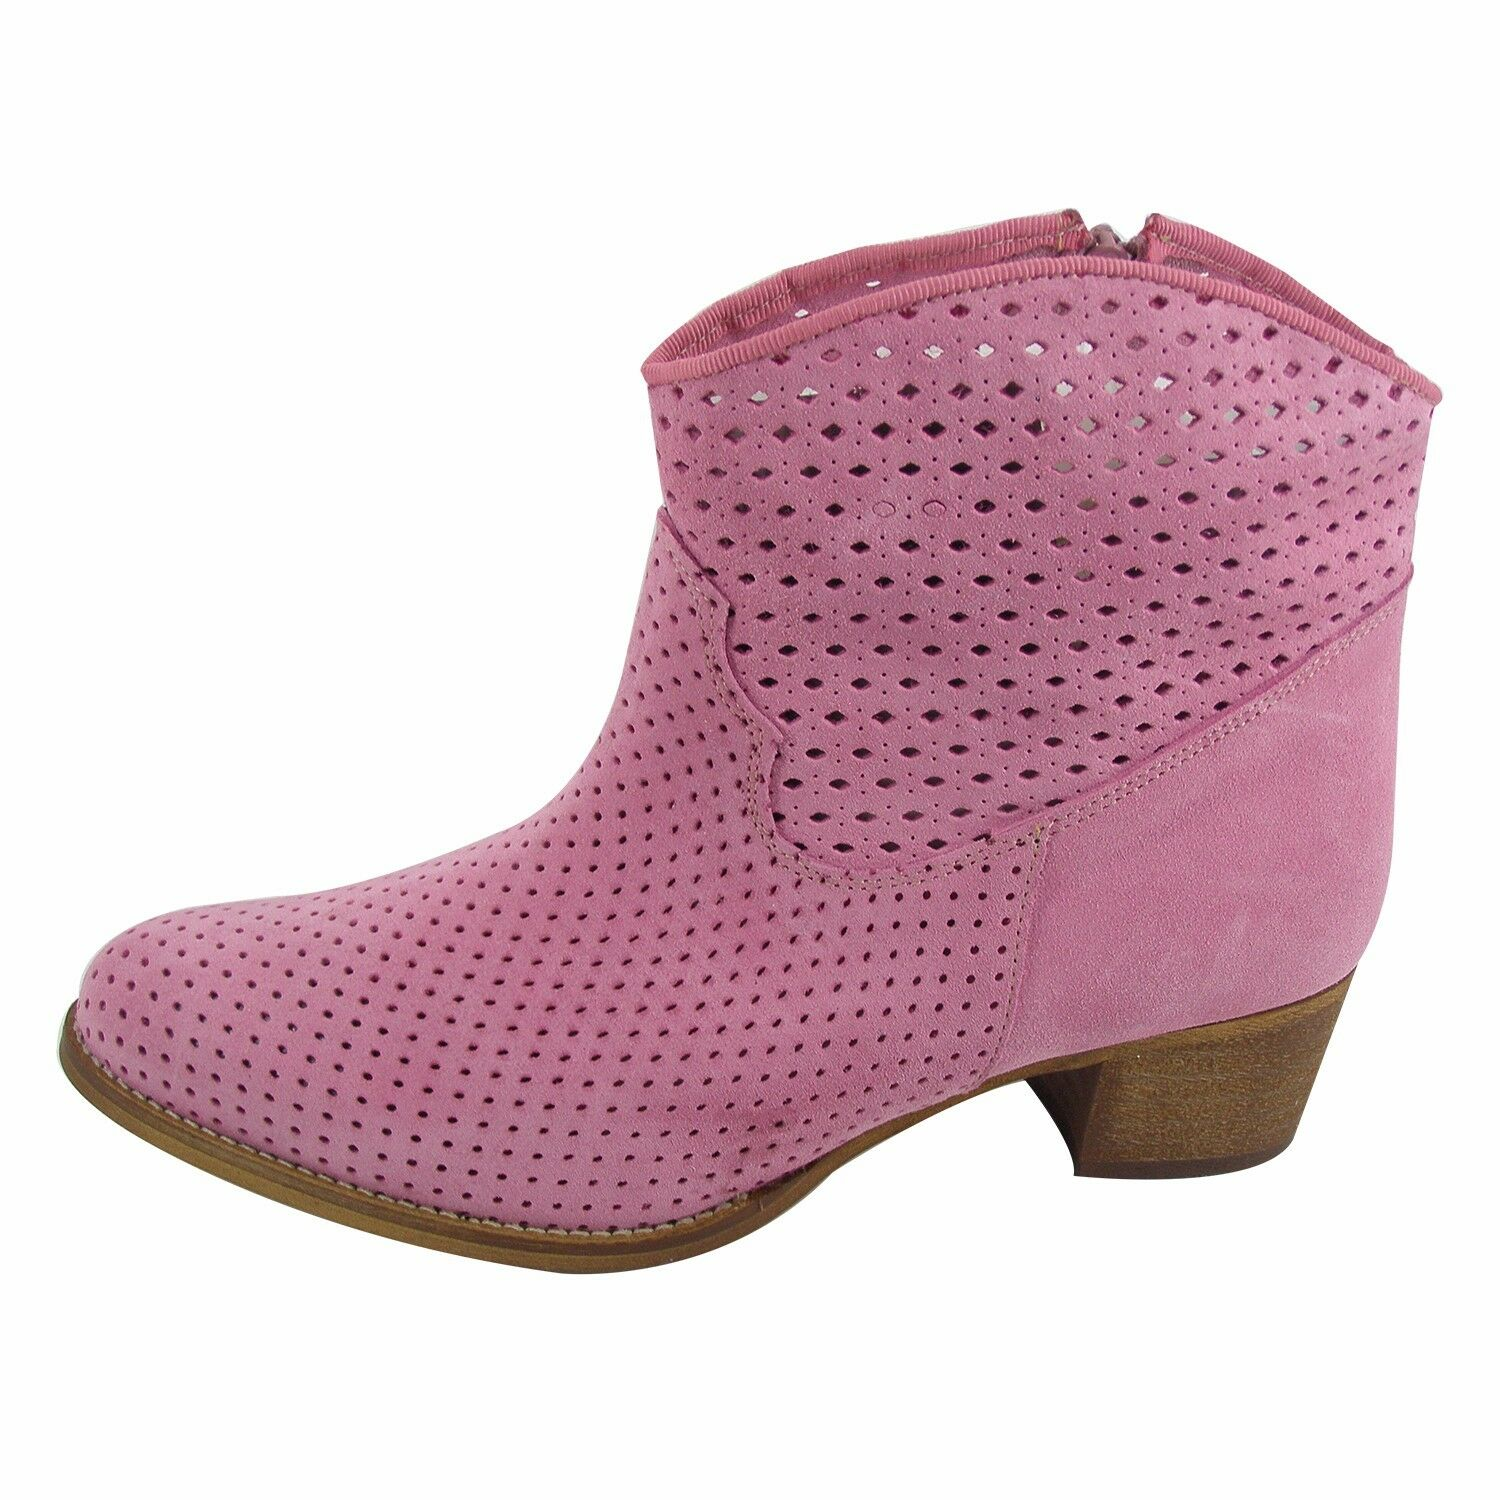 Size 12 Women's Women's Women's Pink Suede Ankle Boots MADE IN SPAIN Large Size Women's shoes 530375